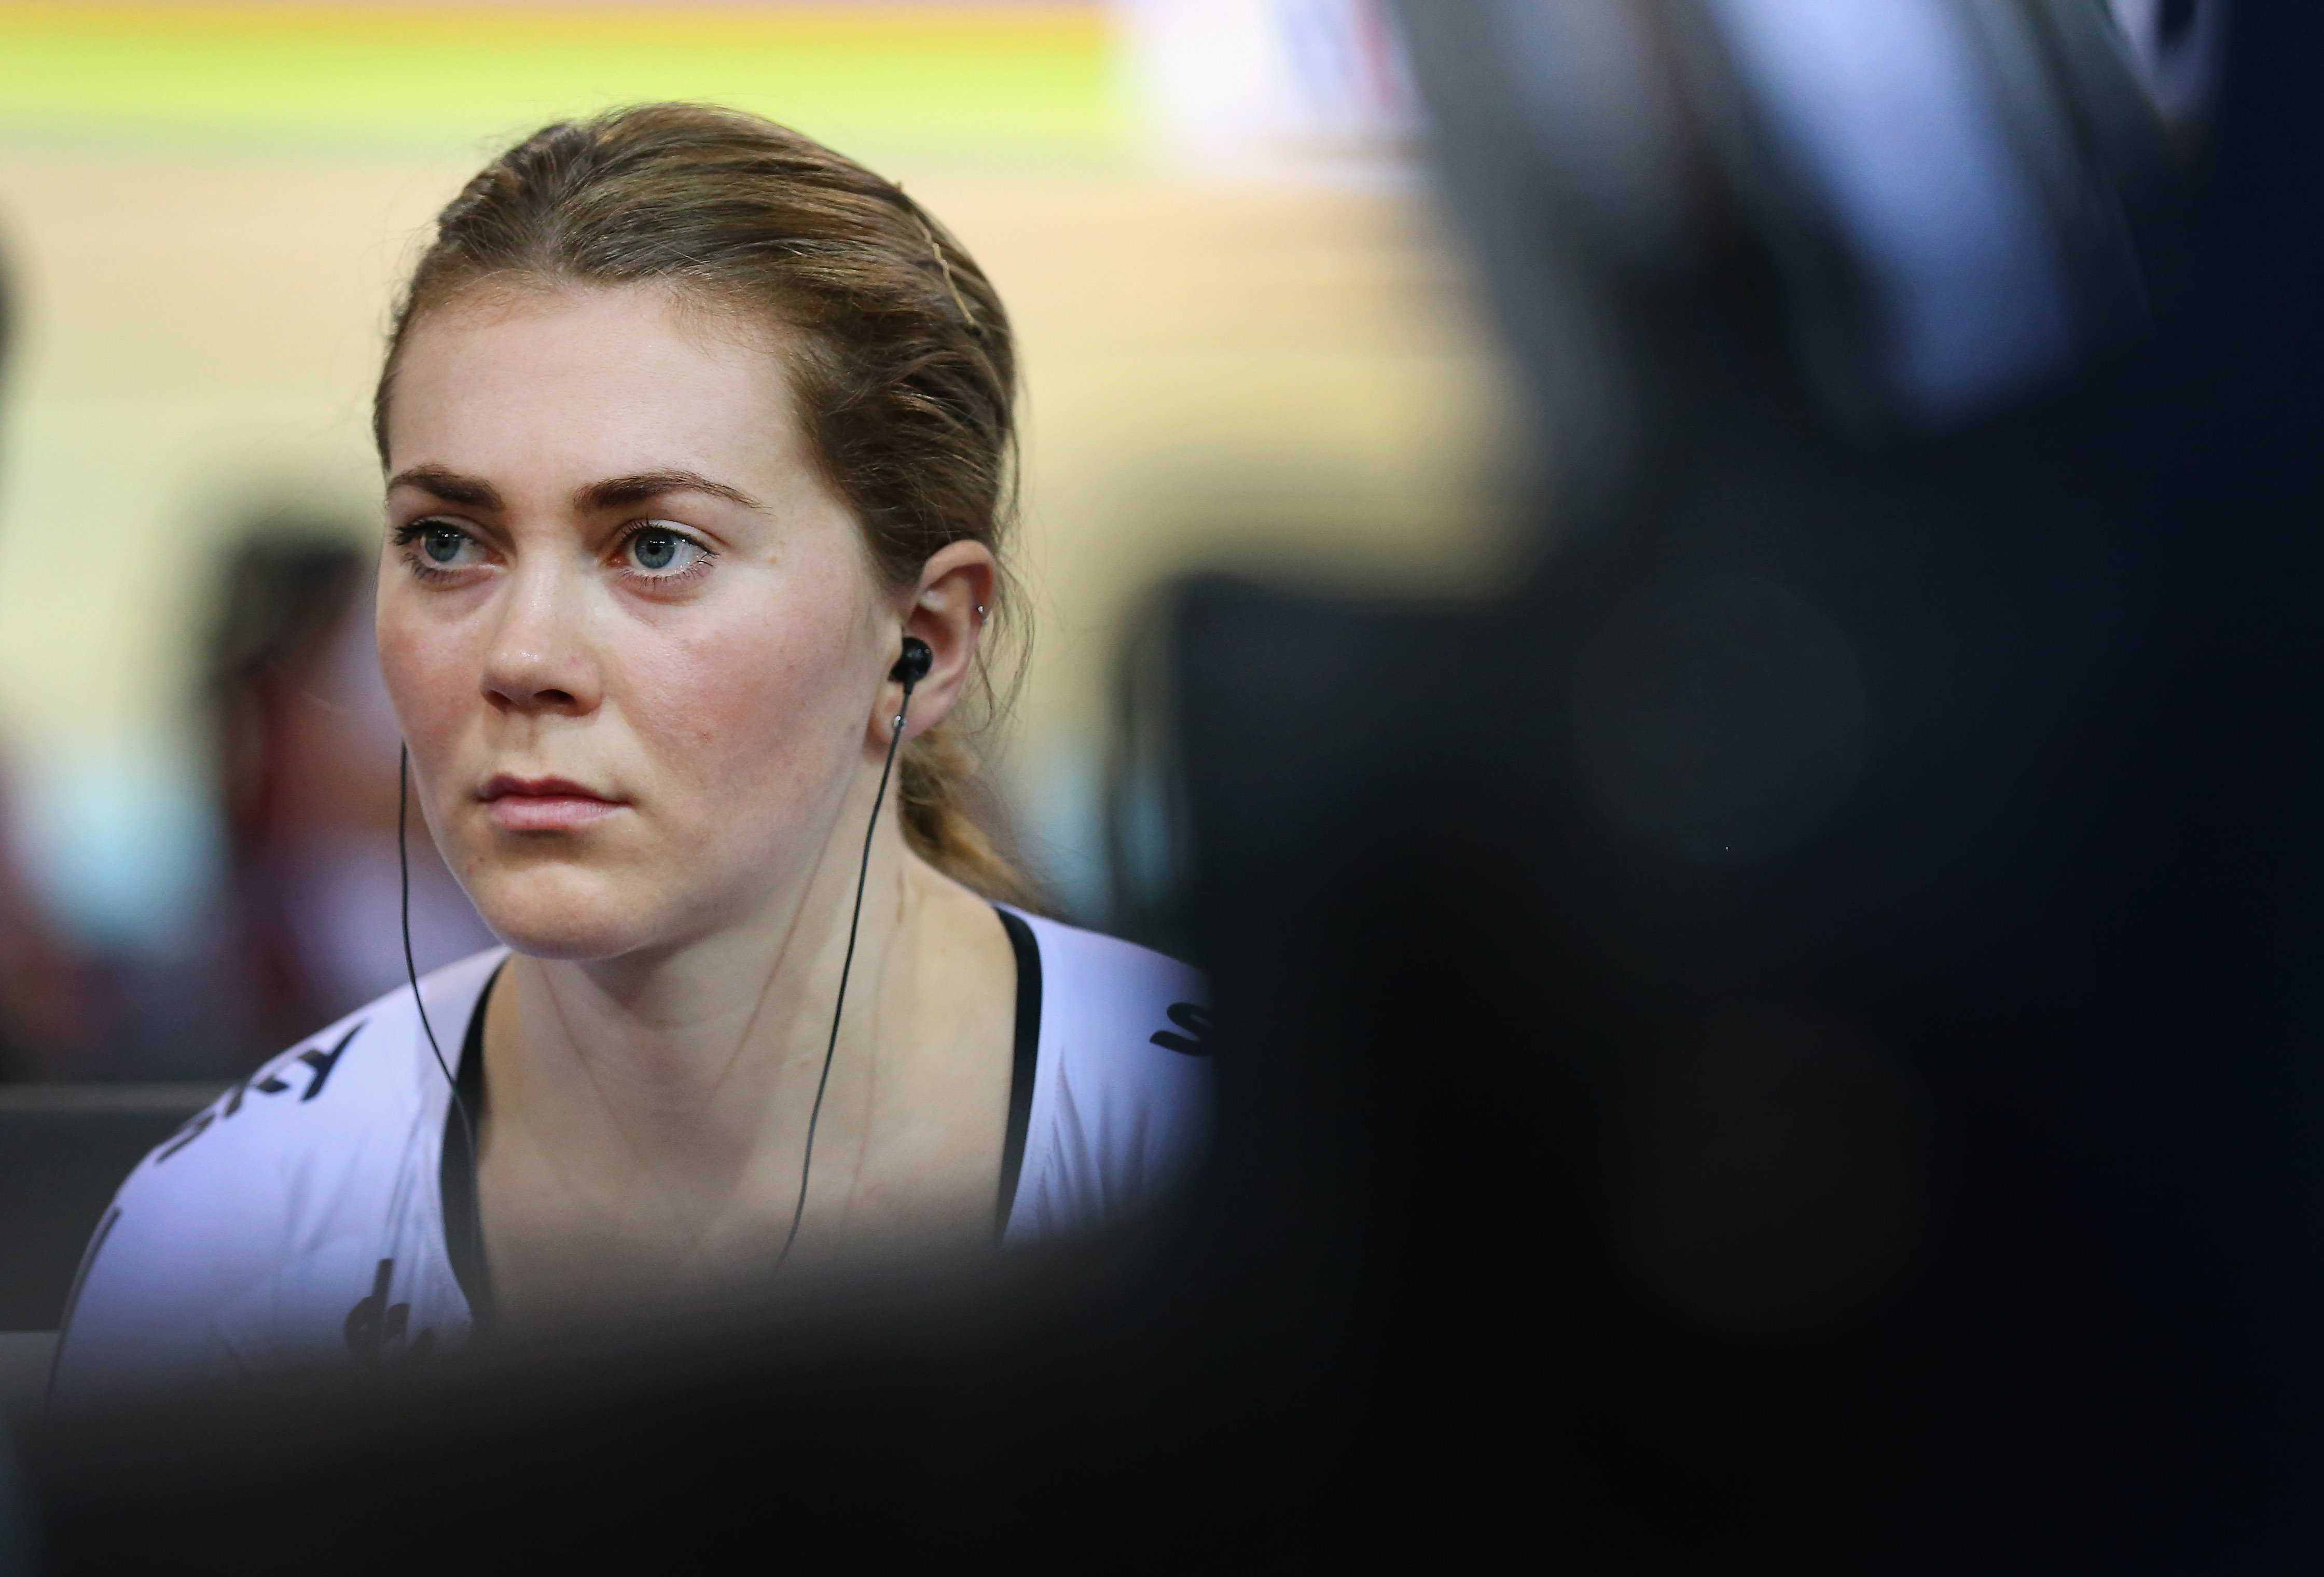 Former track sprinter Jess Varnish loses appeal in British Cycling case